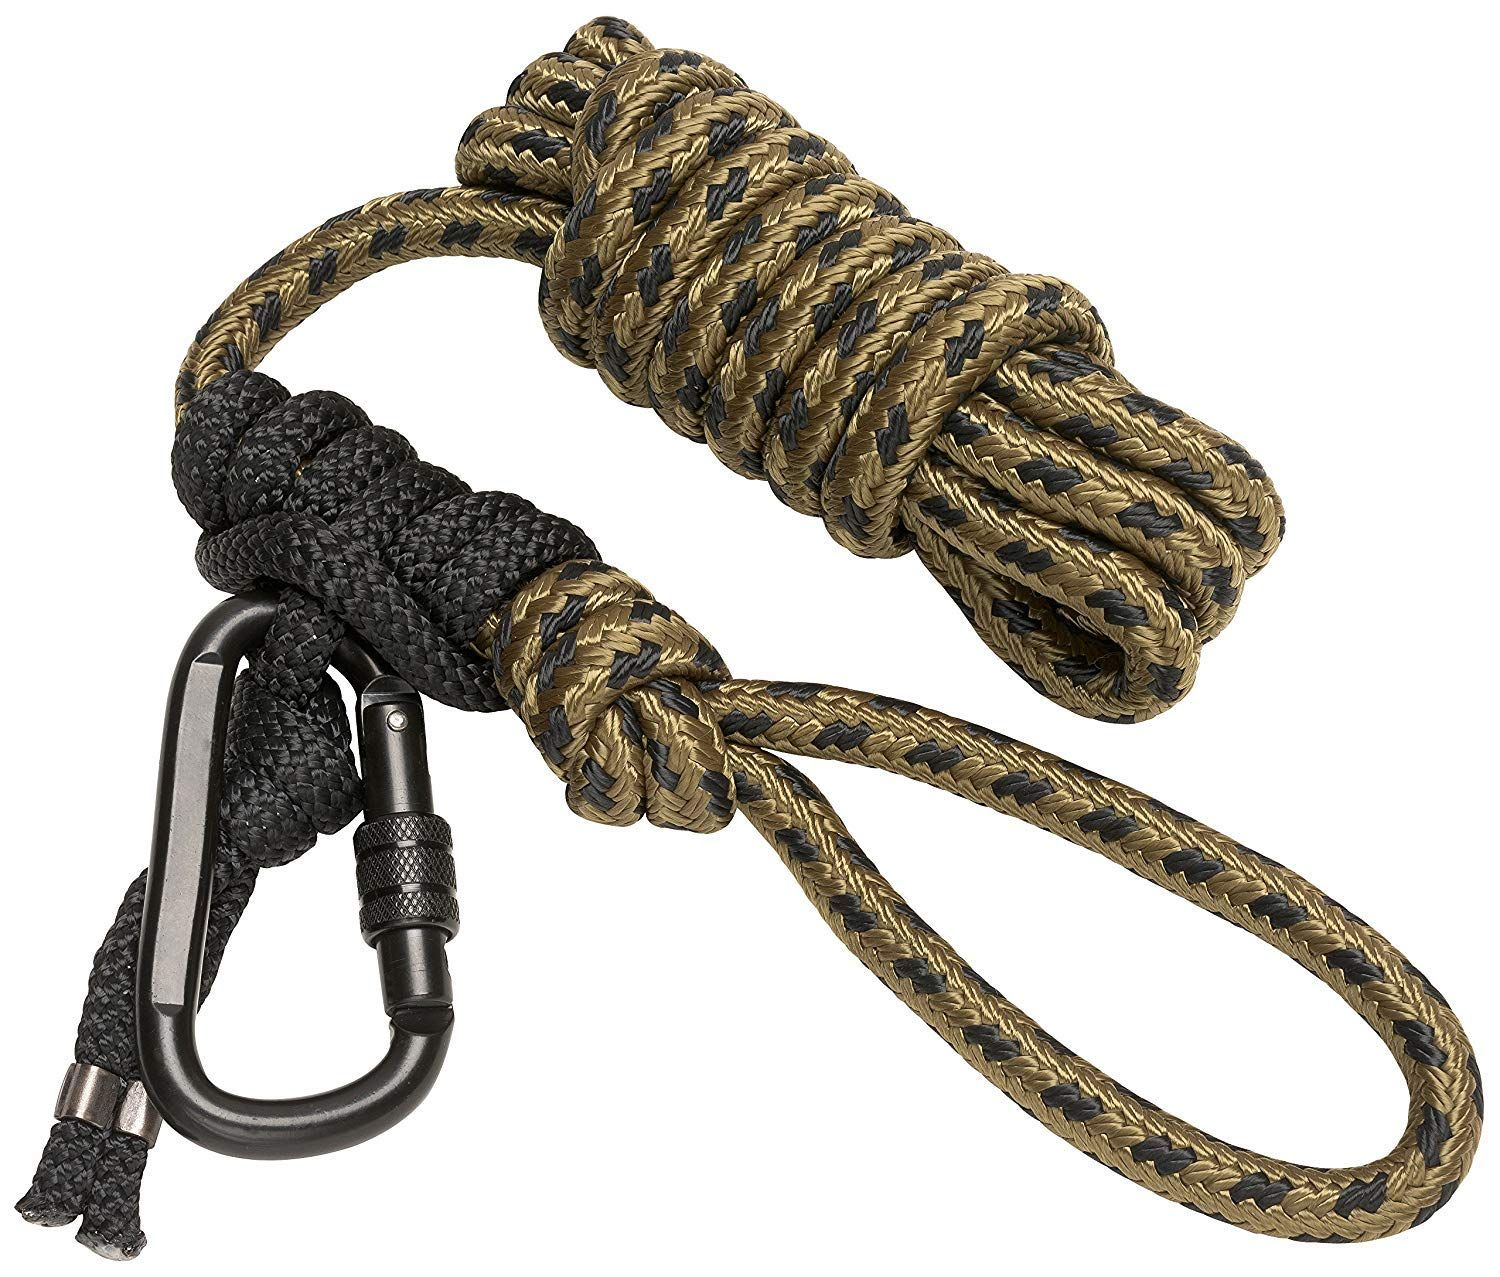 Hunter Safety System RopeStyle Tree Strap https